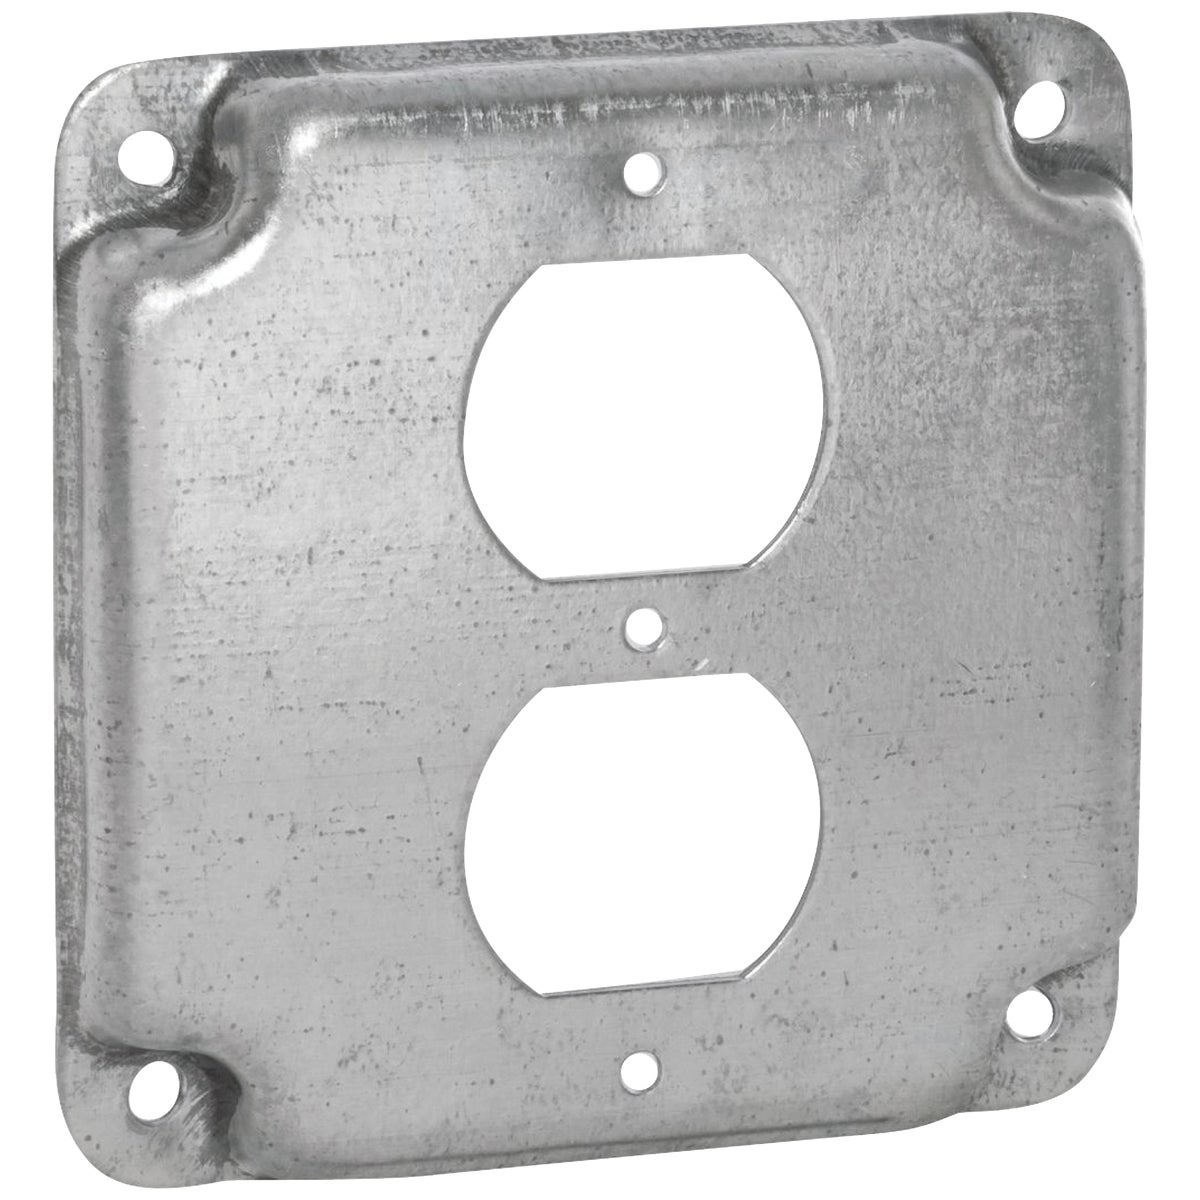 "4"" SQ 2-OUTLET BOX COVER - RS1230 by Thomas & Betts"